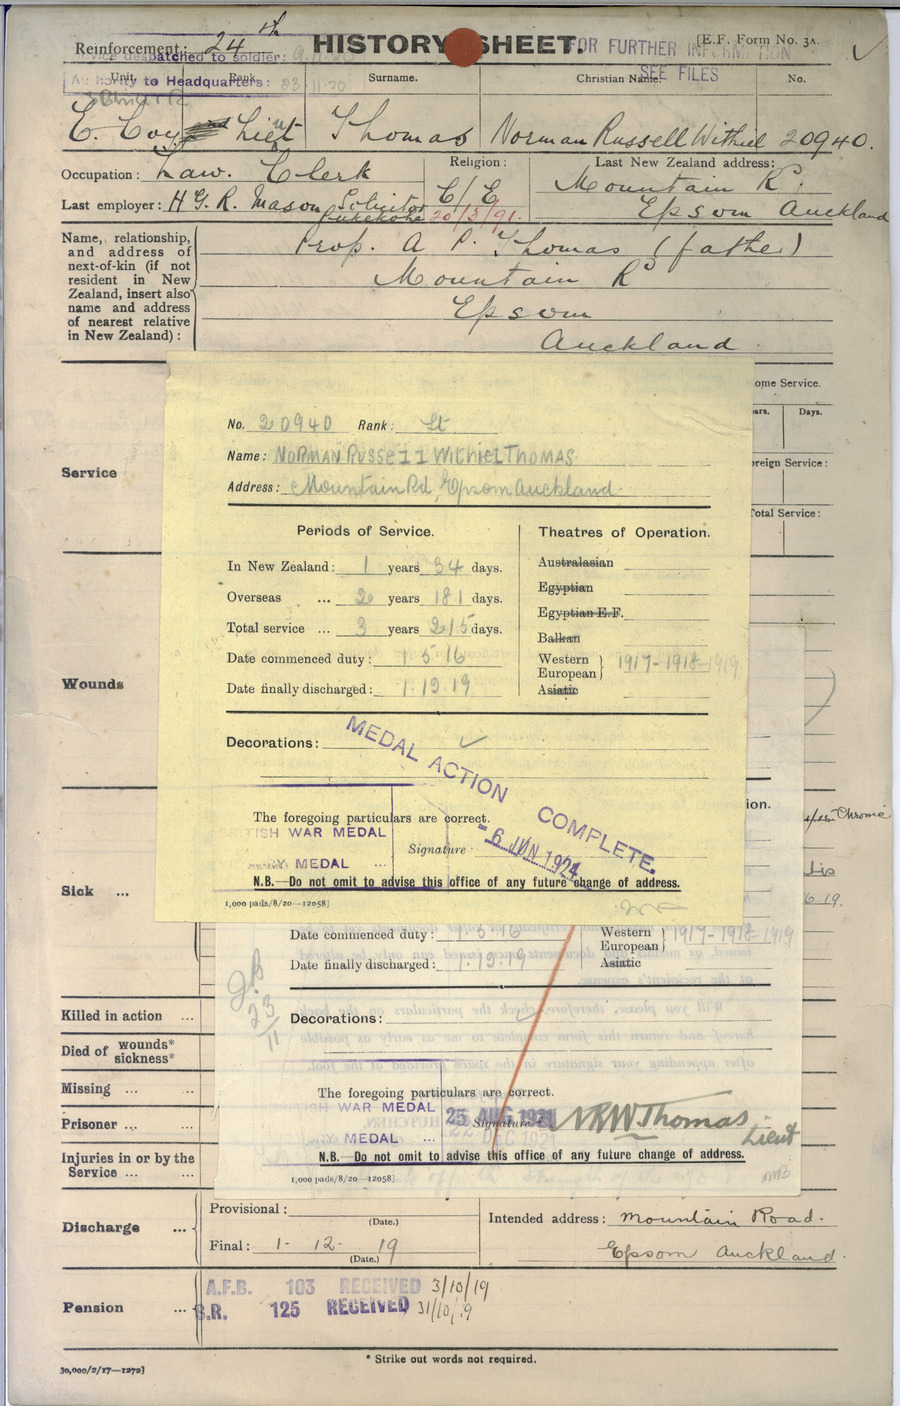 THOMAS, Norman Russell Withiel - WW1 20940 - Army